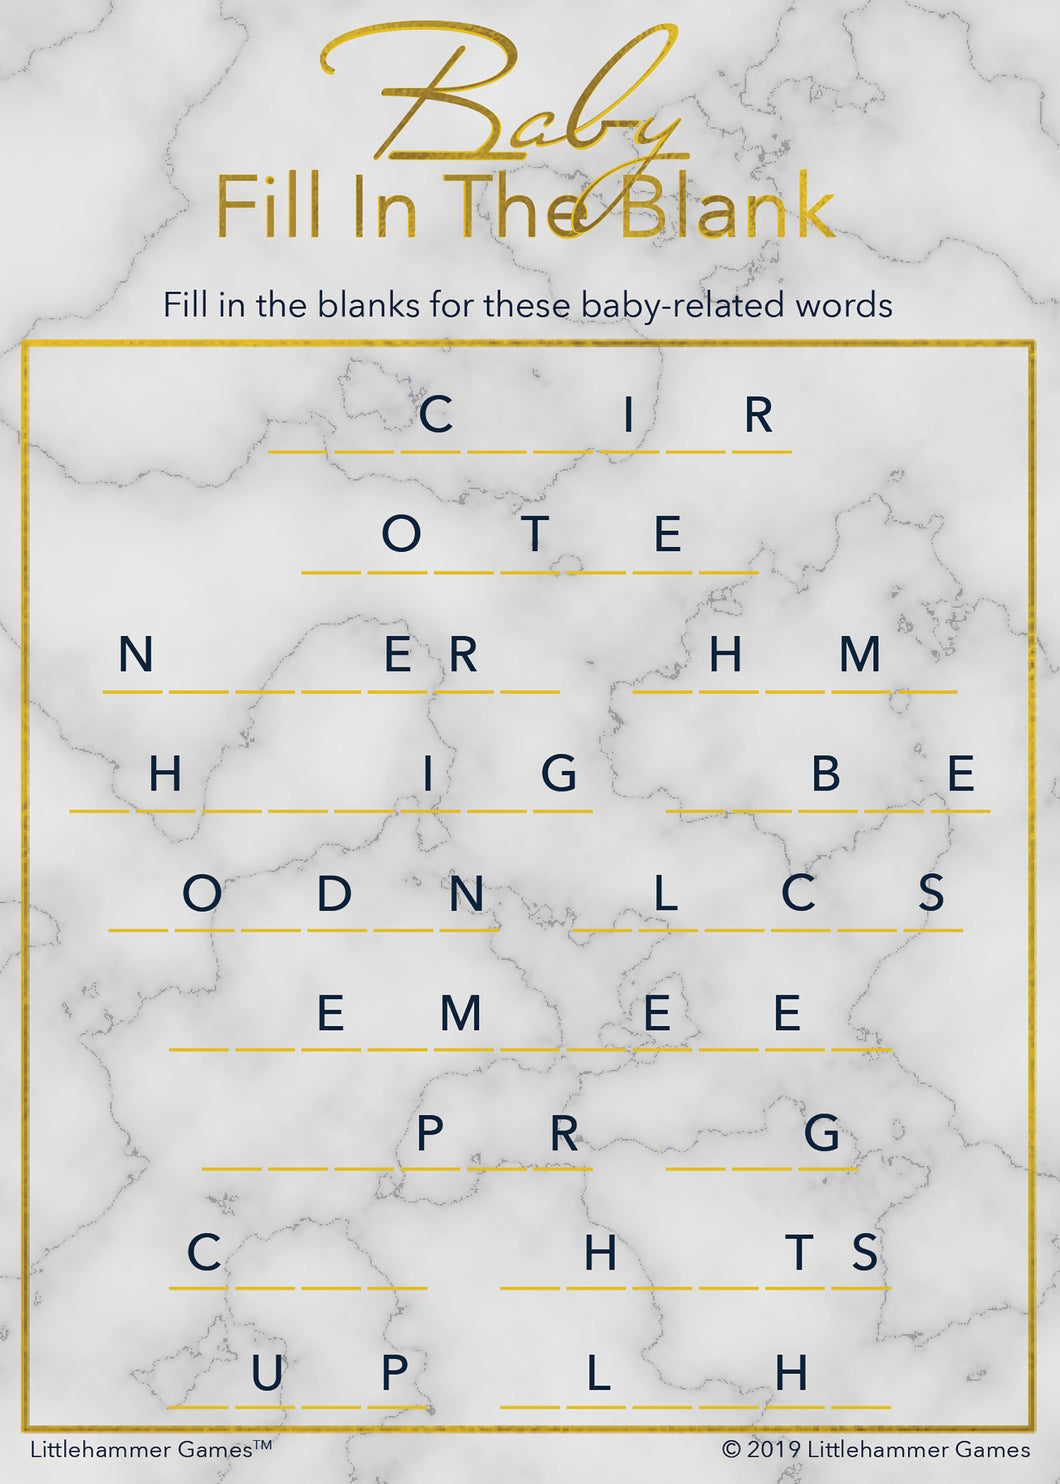 Baby Fill in the Blank game card with gold text on a marble background